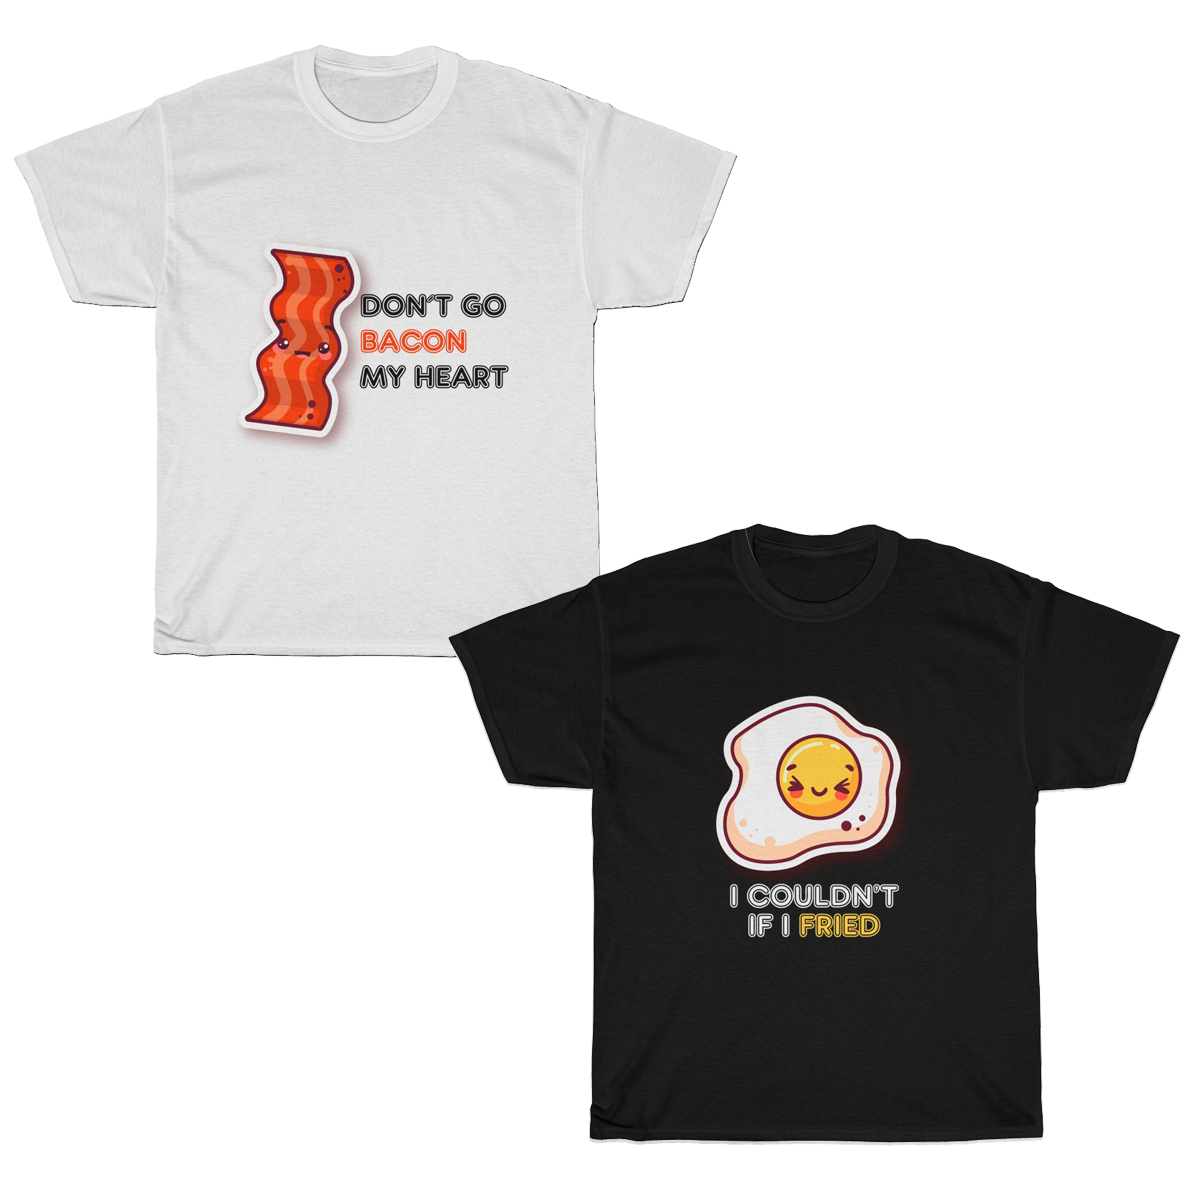 Perfect Match Bacon & Egg Couples T-Shirt Set